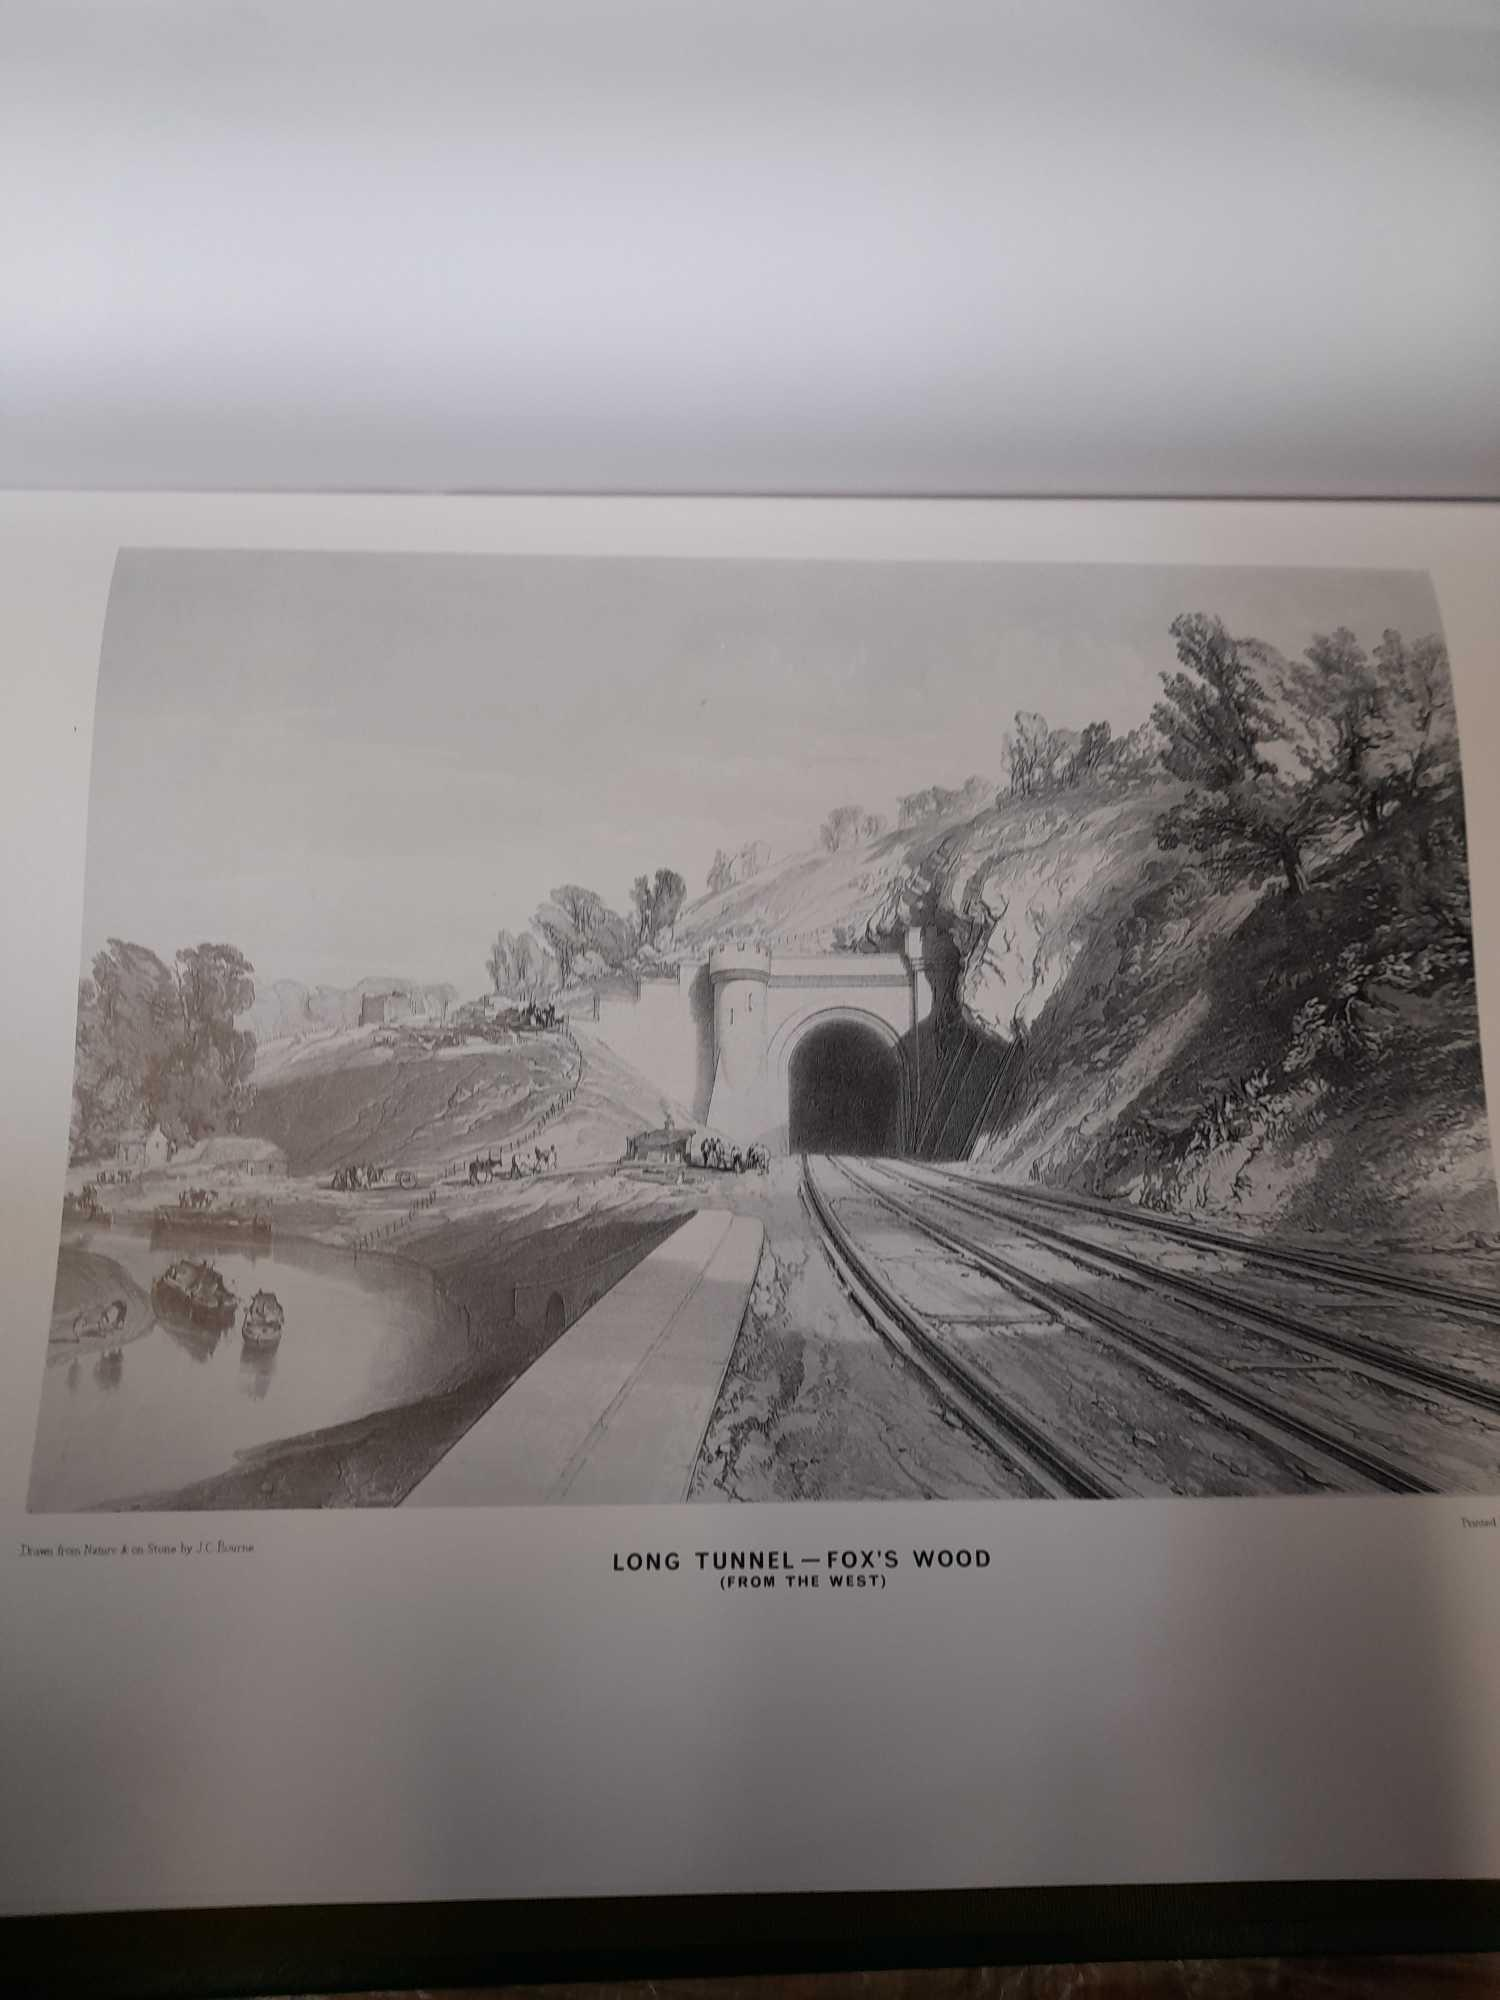 BOURNES GREAT WESTERN RAILWAY BOOK COPY 1 OF 500 - Image 8 of 9